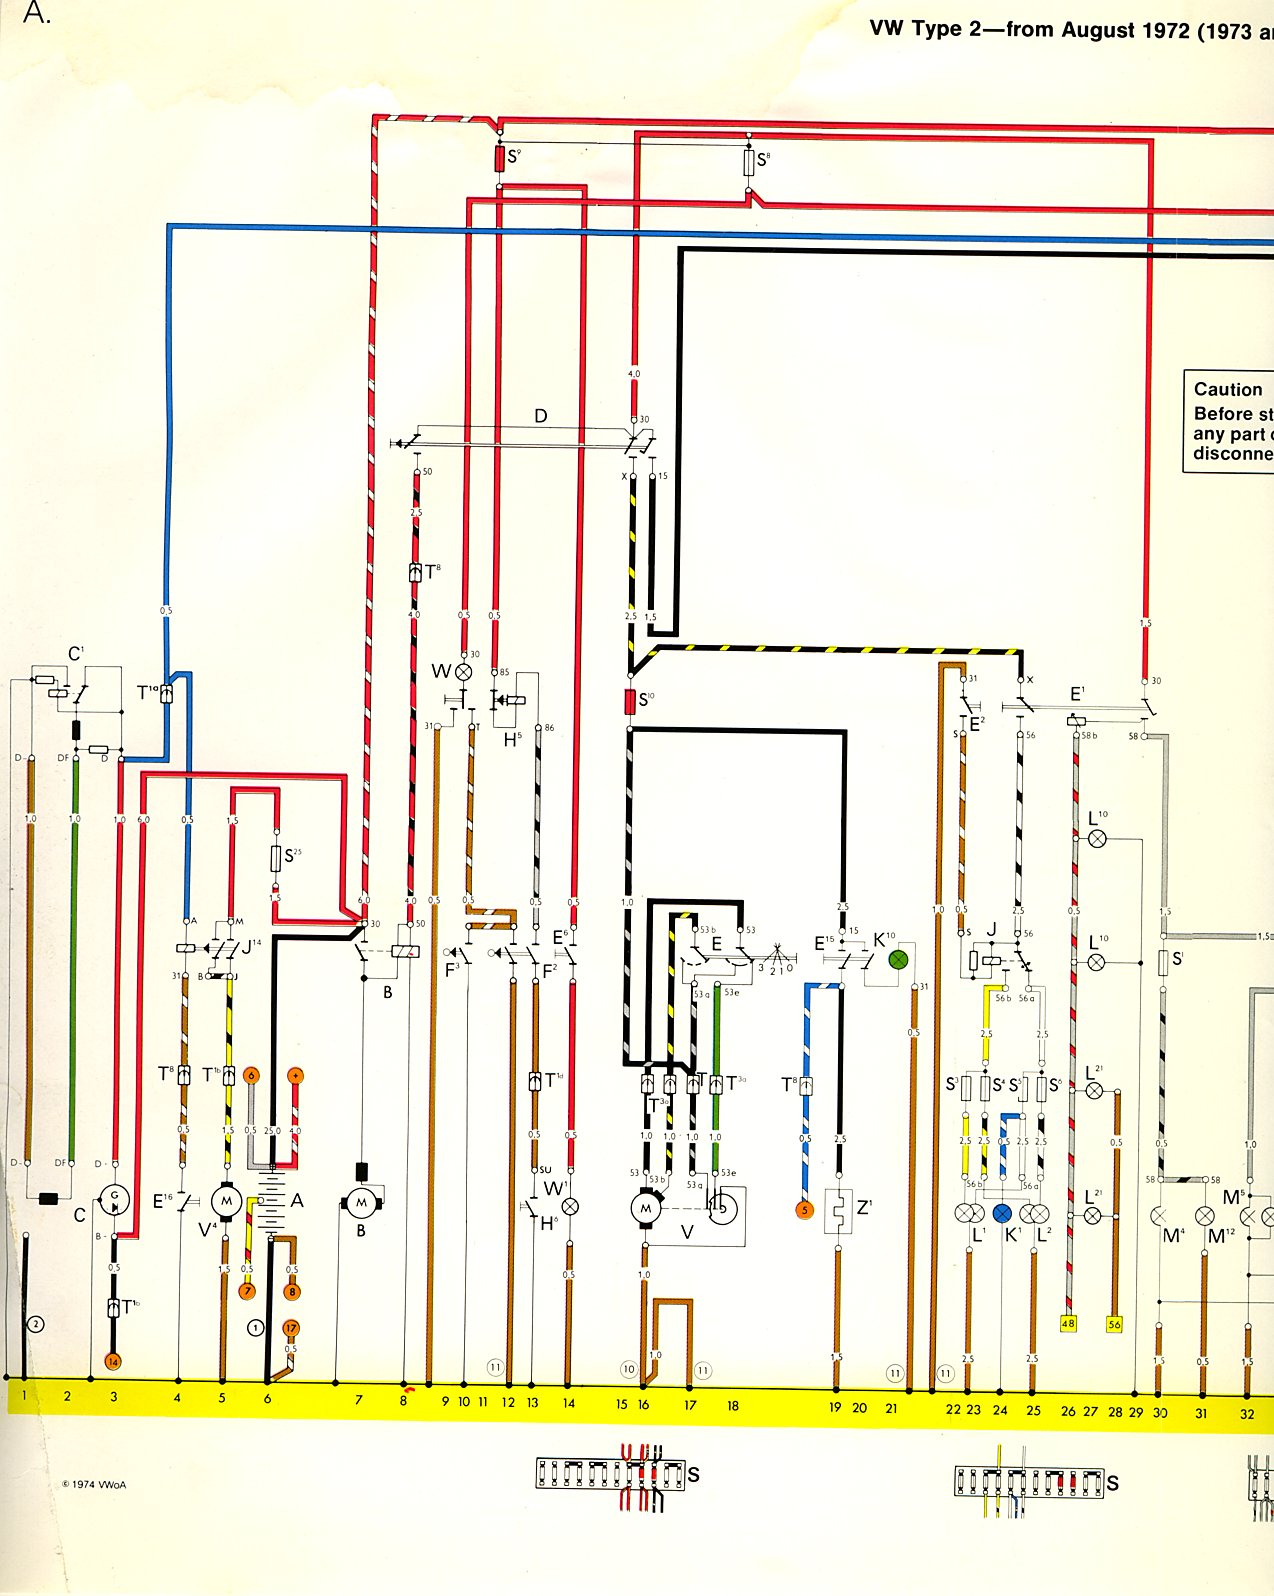 baybus_7374a vw bus wiring diagram 1965 vw bus wiring diagram \u2022 wiring diagrams 1970 vw bug wiring diagram at gsmportal.co